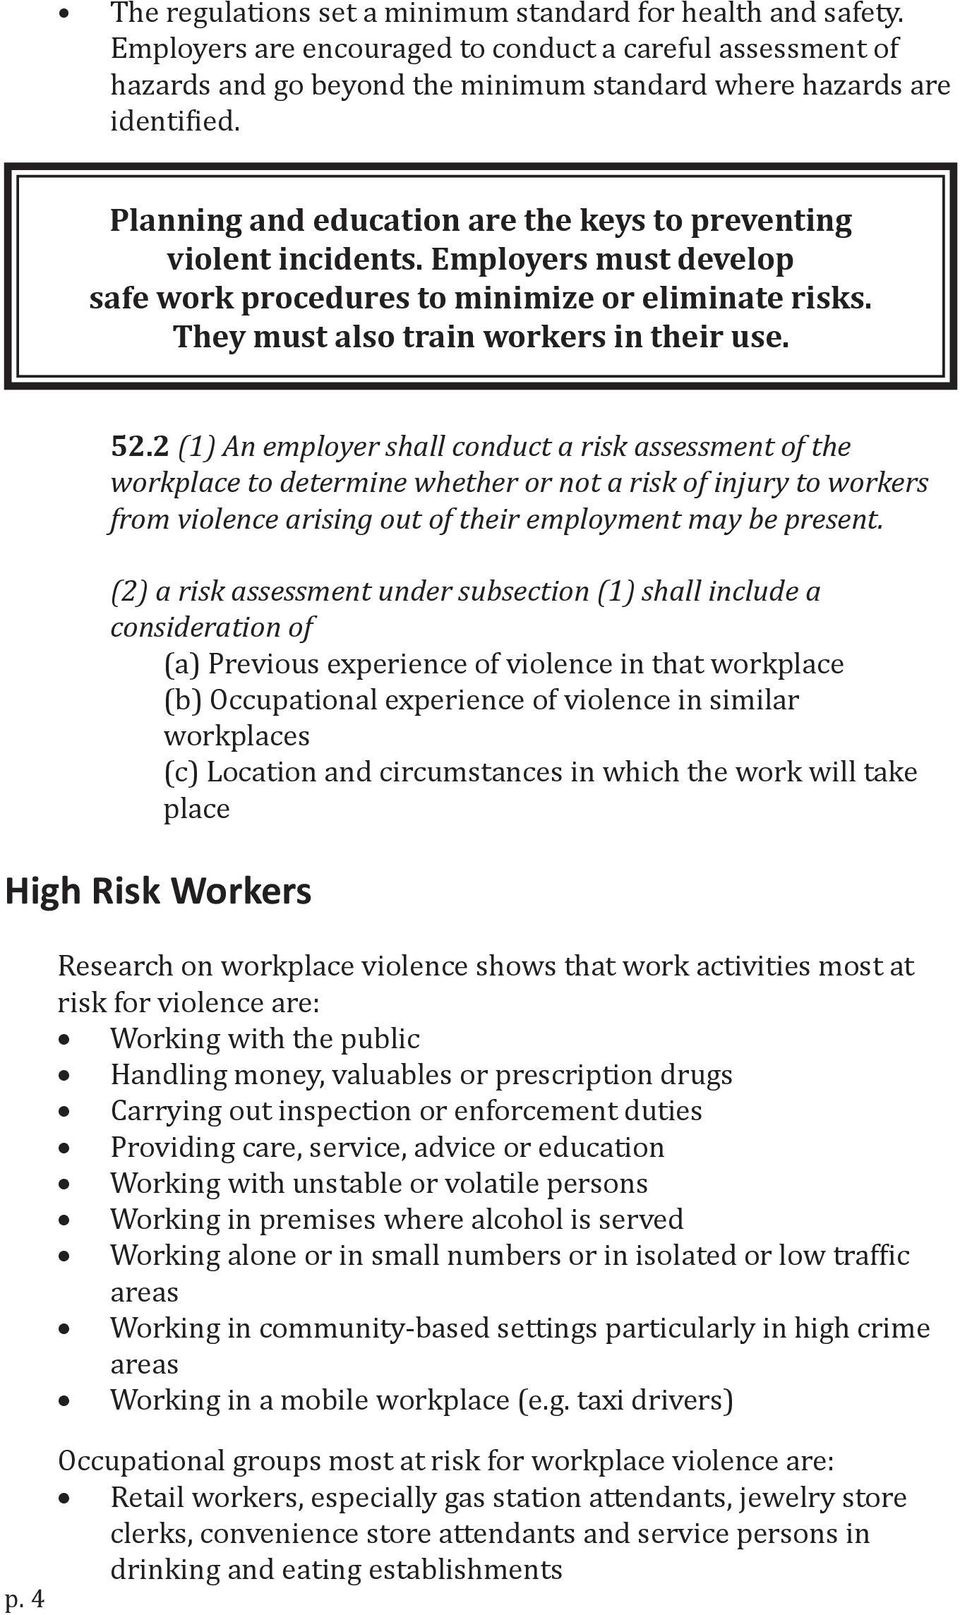 2 (1) An employer shall conduct a risk assessment of the workplace to determine whether or not a risk of injury to workers from violence arising out of their employment may be present.